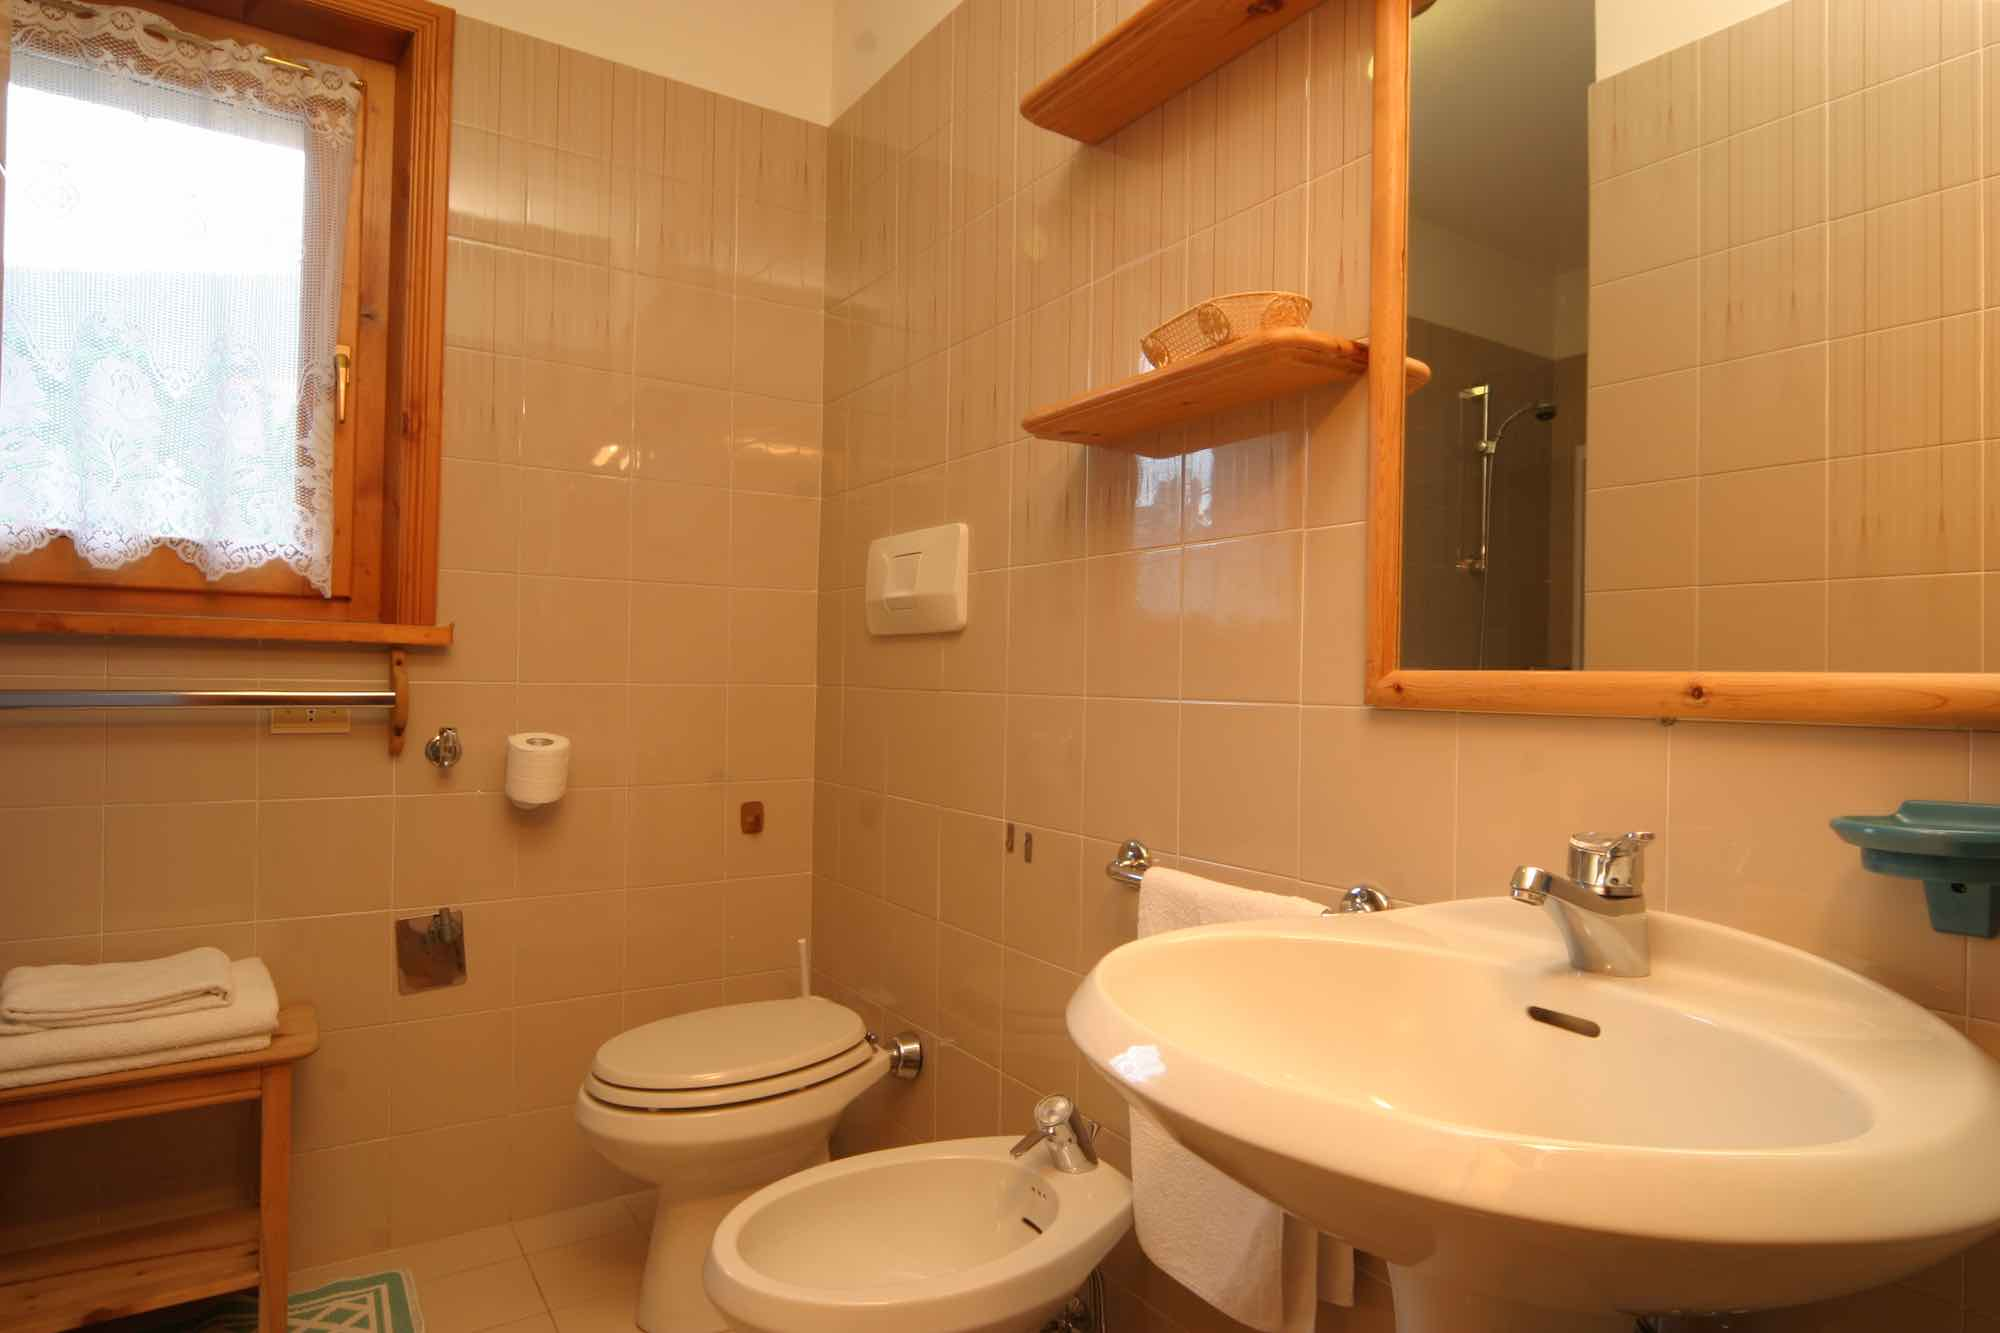 Bait da Borch - Via Saroch N.1430/f, Livigno 23041 - Apartment - Appartamento Federia 5